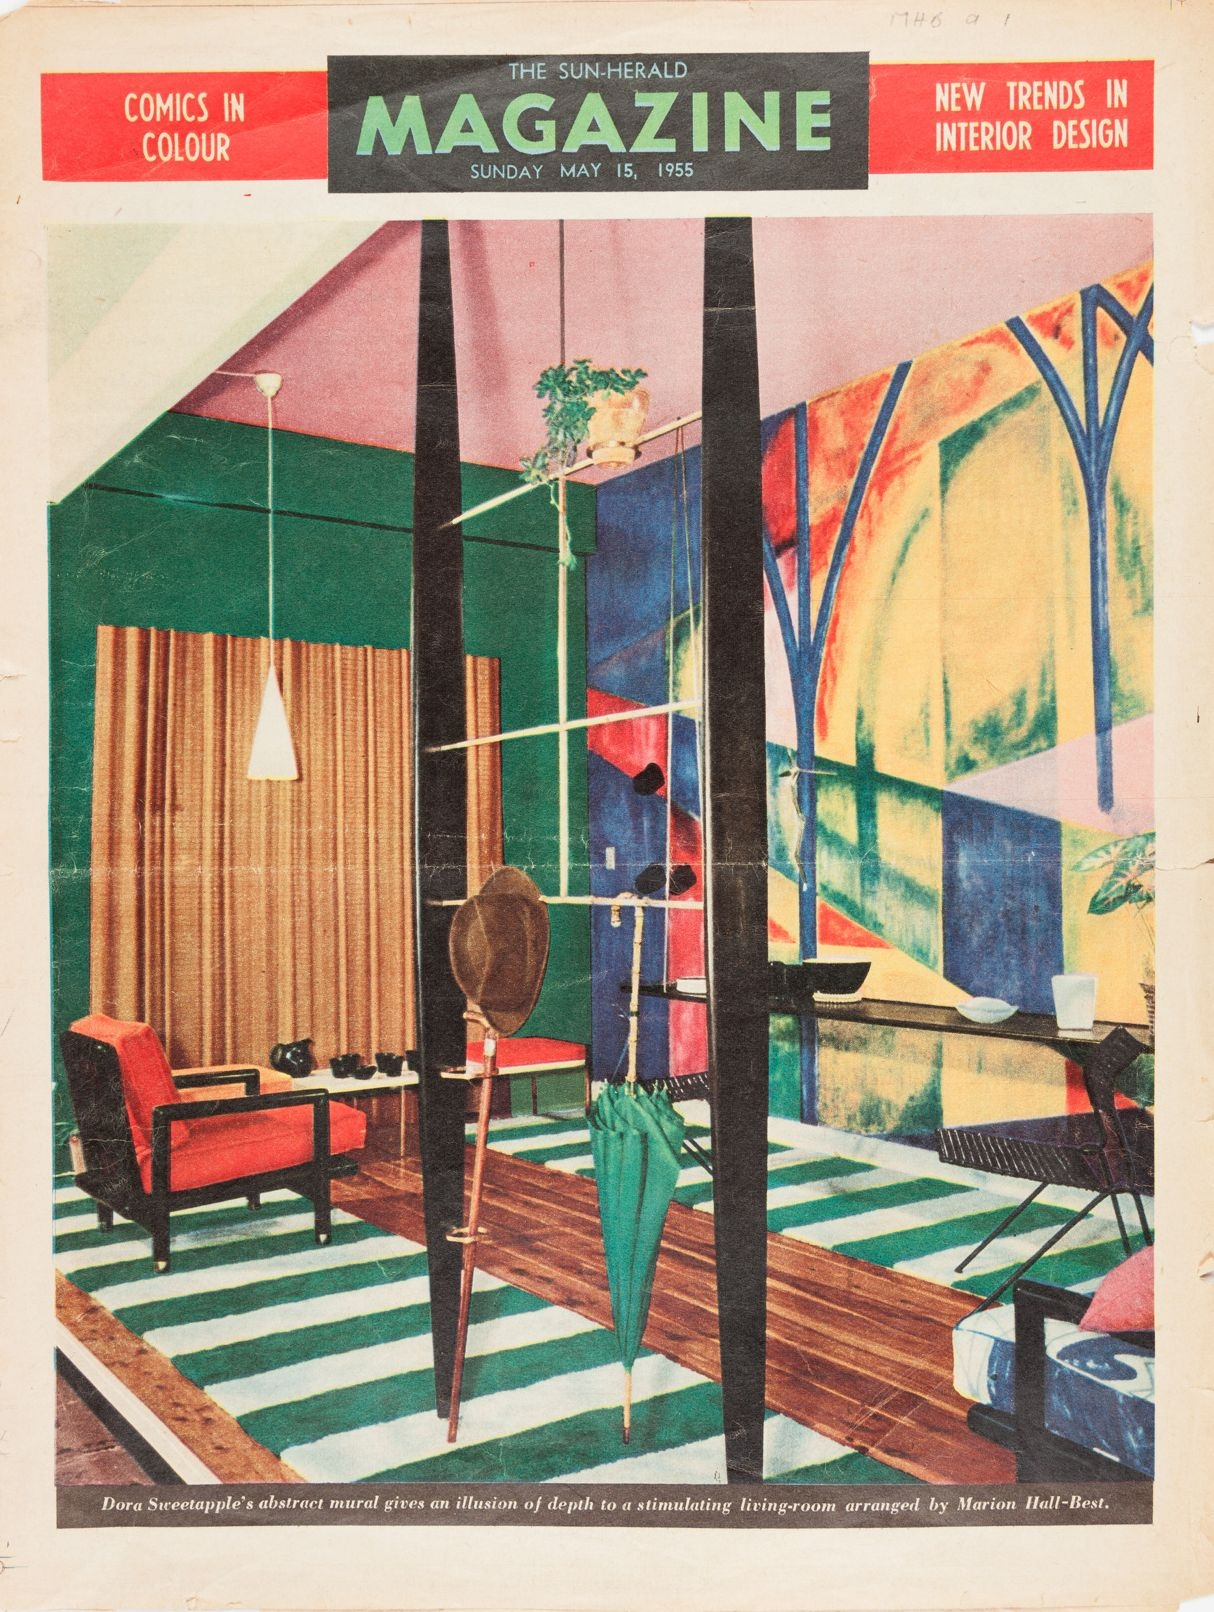 'New trends in interior design', 1955